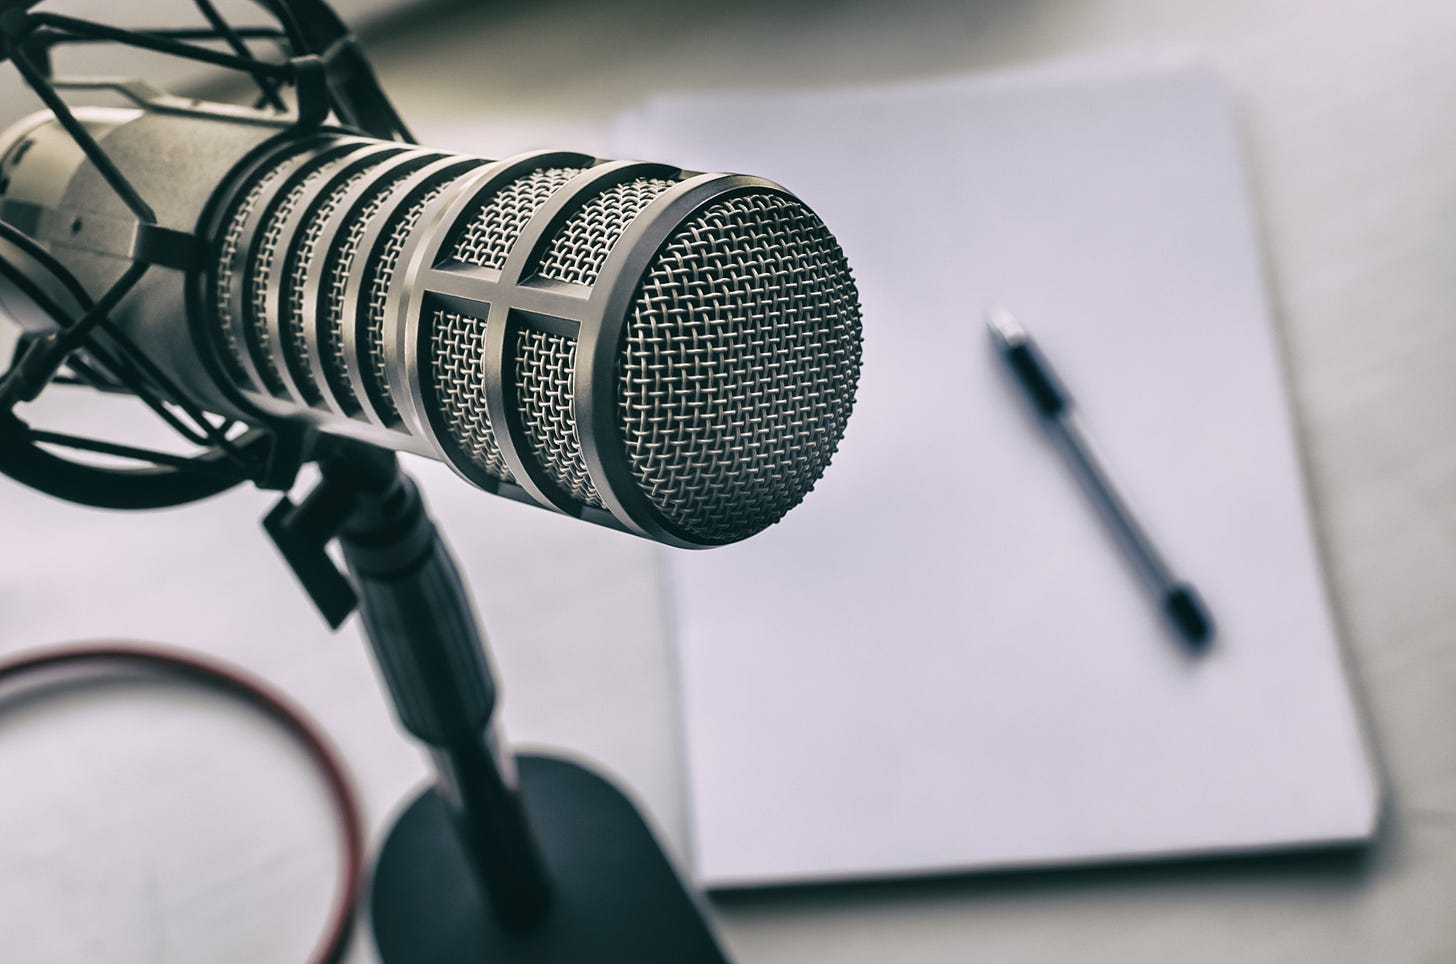 Podcast Networks Provide Much-Needed Comfort During Pandemic – Deadline